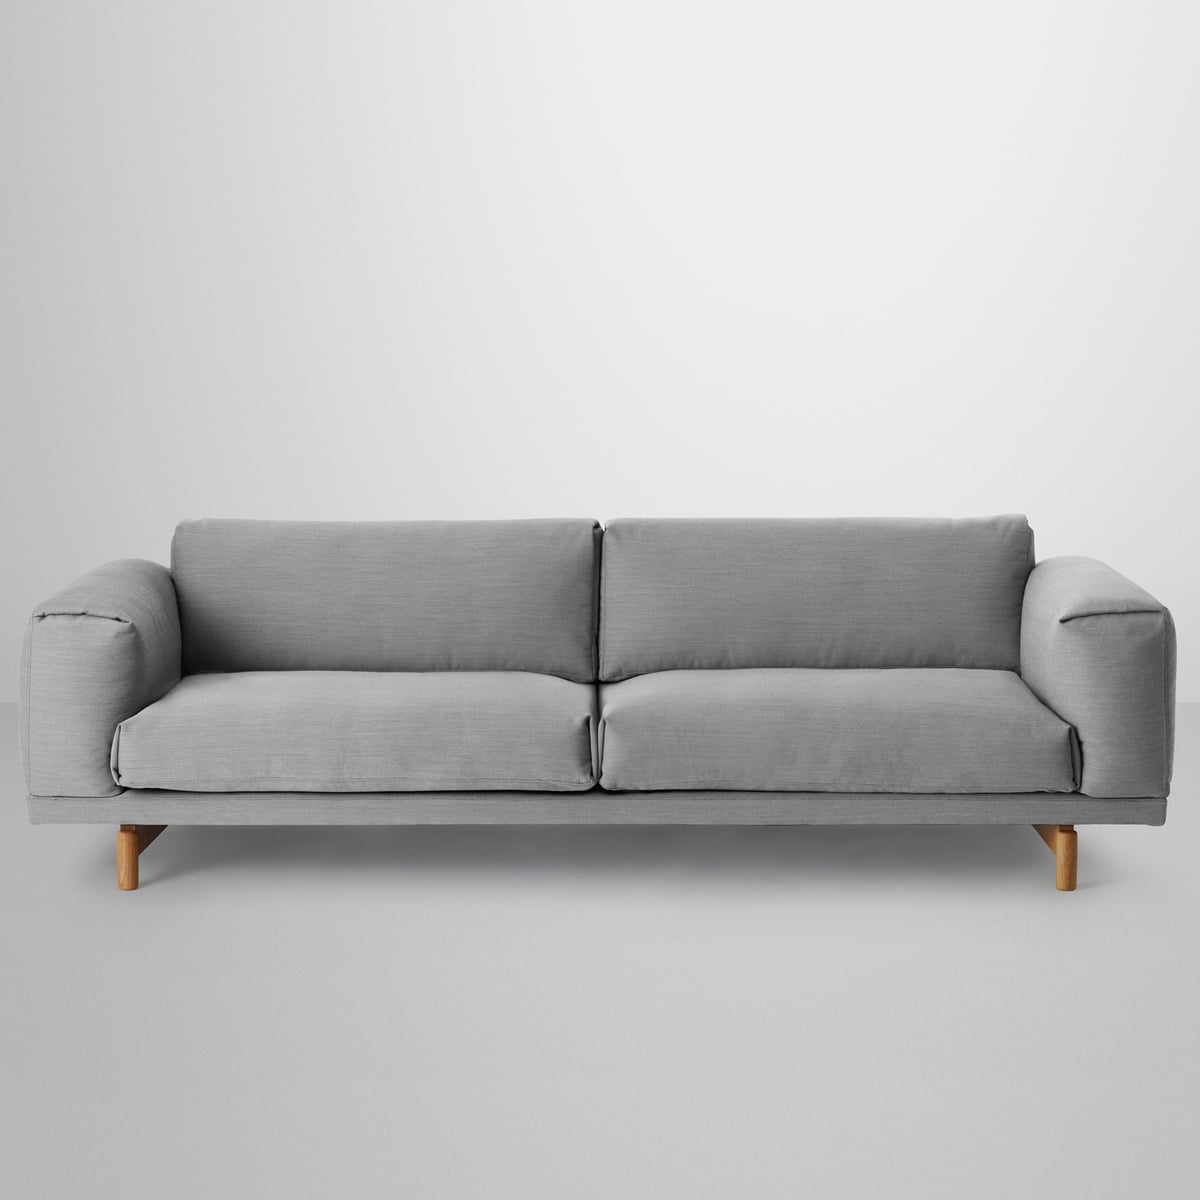 Rest sofa 3 seater by muuto in the shop for 3 on a couch